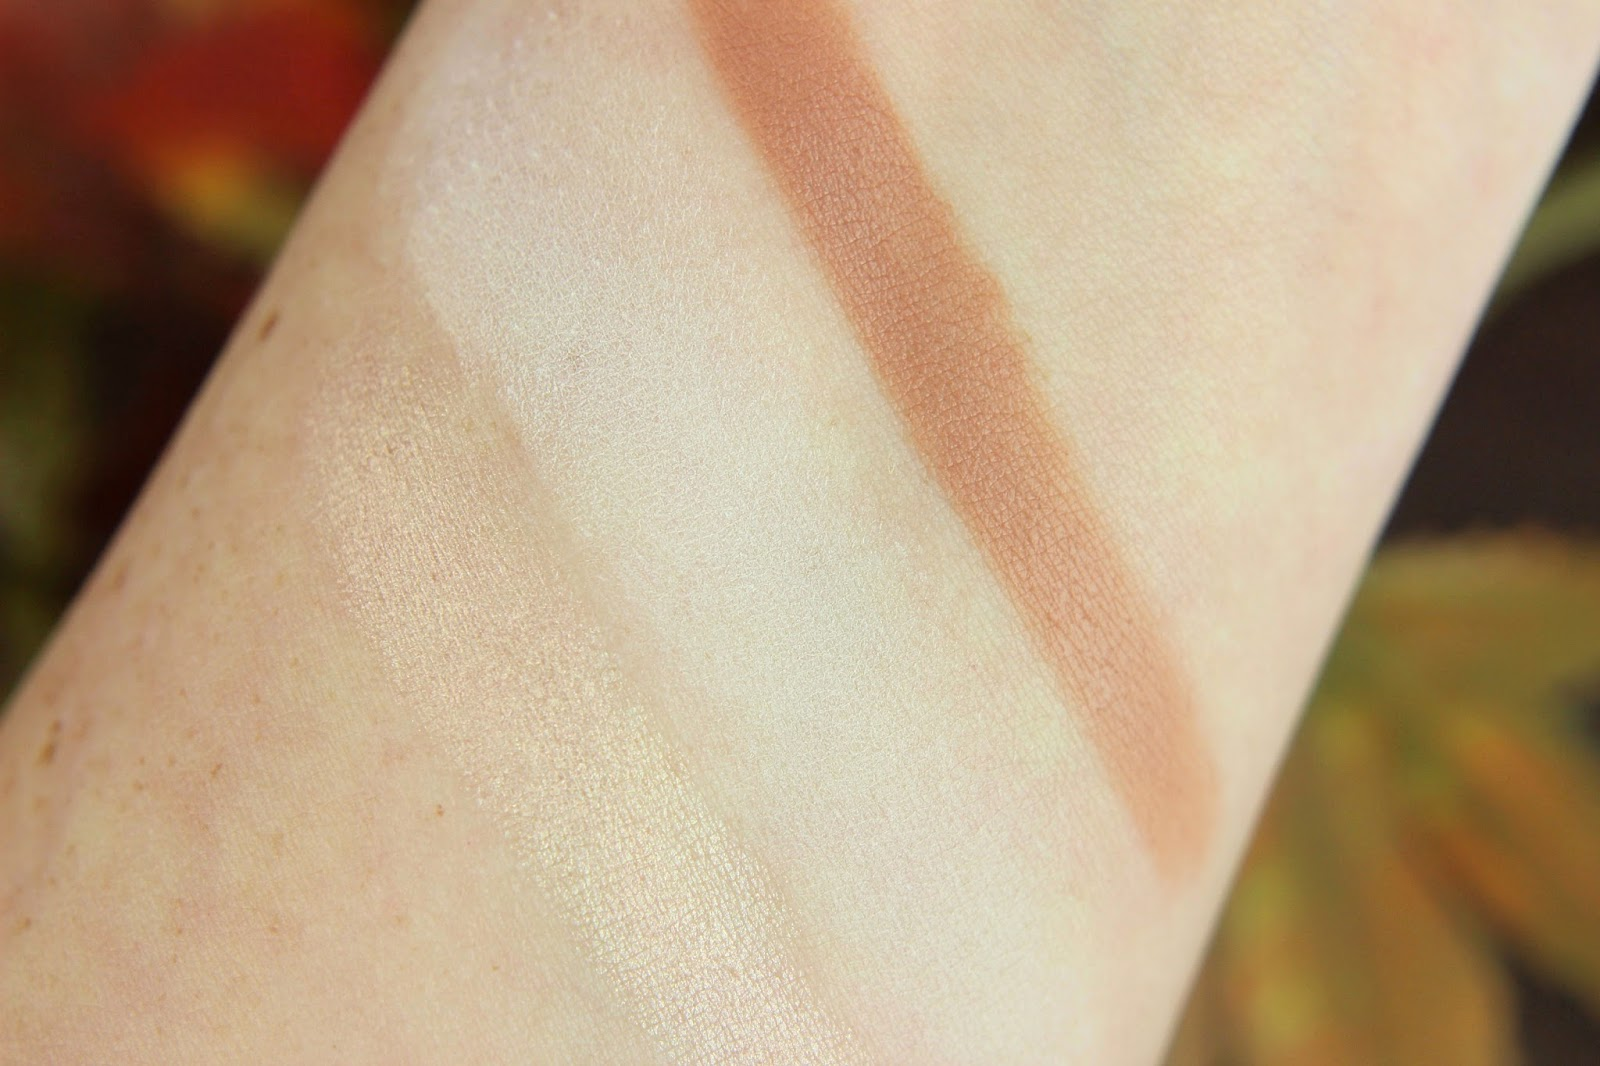 blush, contouring, crazy autumn love, drogerie, essence, limited edition, matt eyeshadow, matt lipstick, matter lippenstift, me & my umbrella, nagellack, review, swatches, tragebilder,